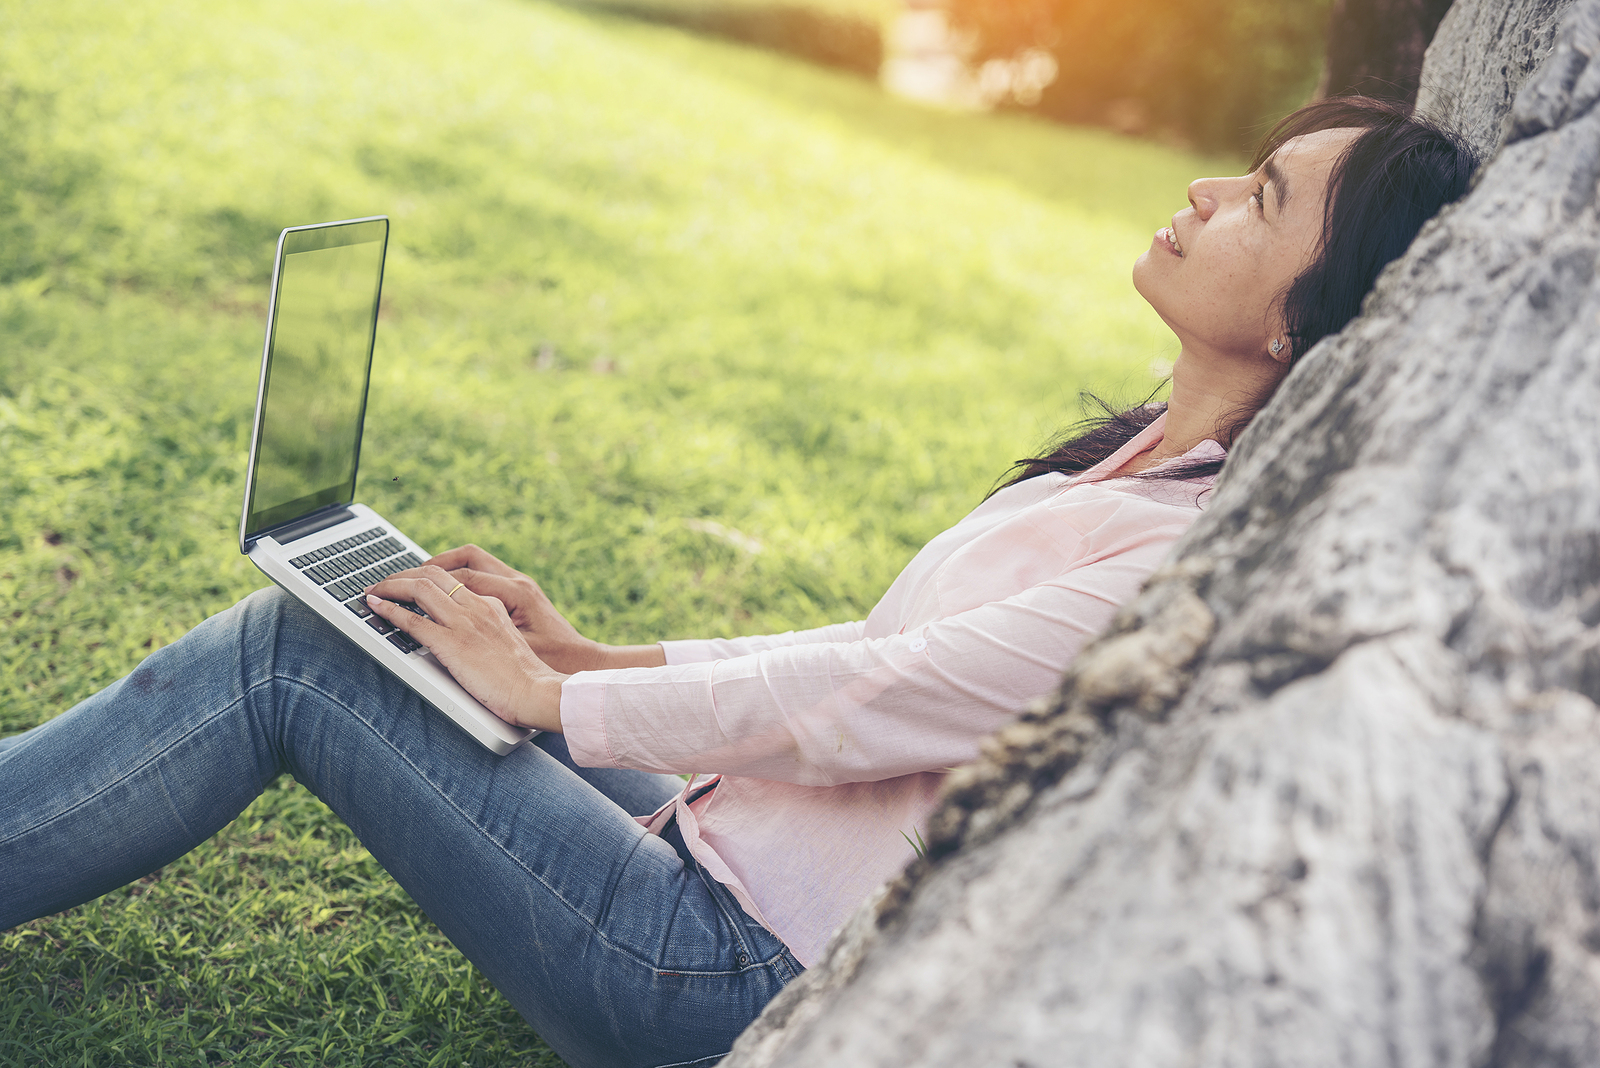 How To Protect The Planet While Working From Home Post-COVID 19